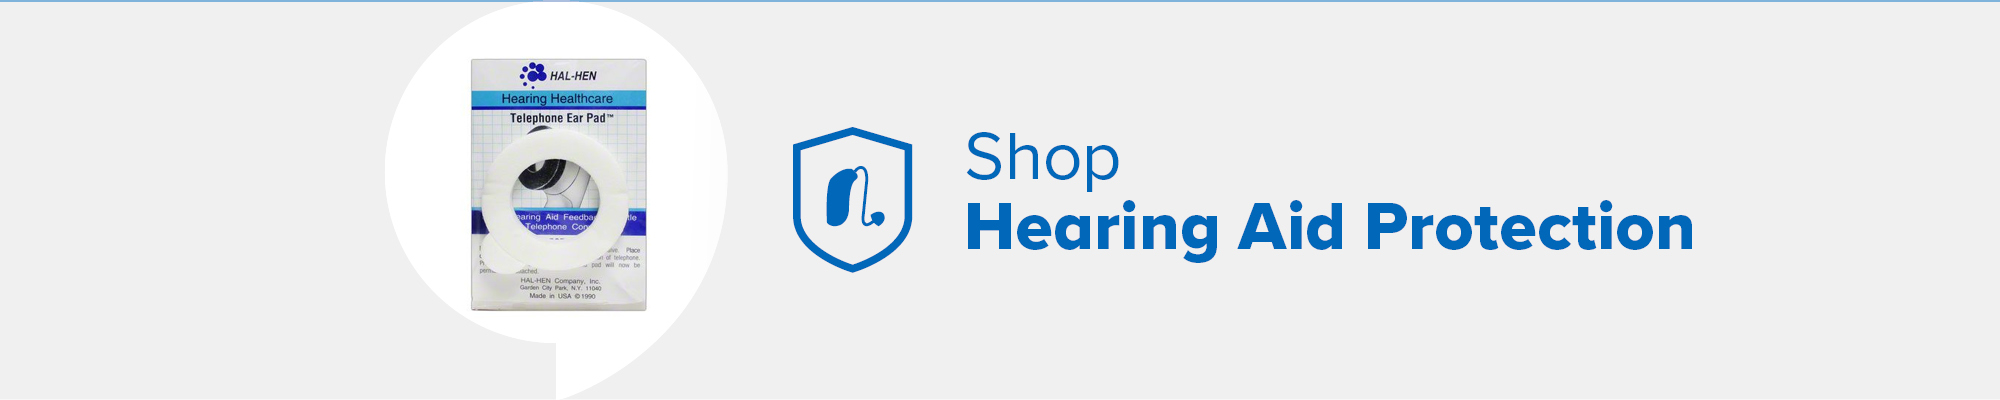 hl-shop-category-hearing-aid-protection